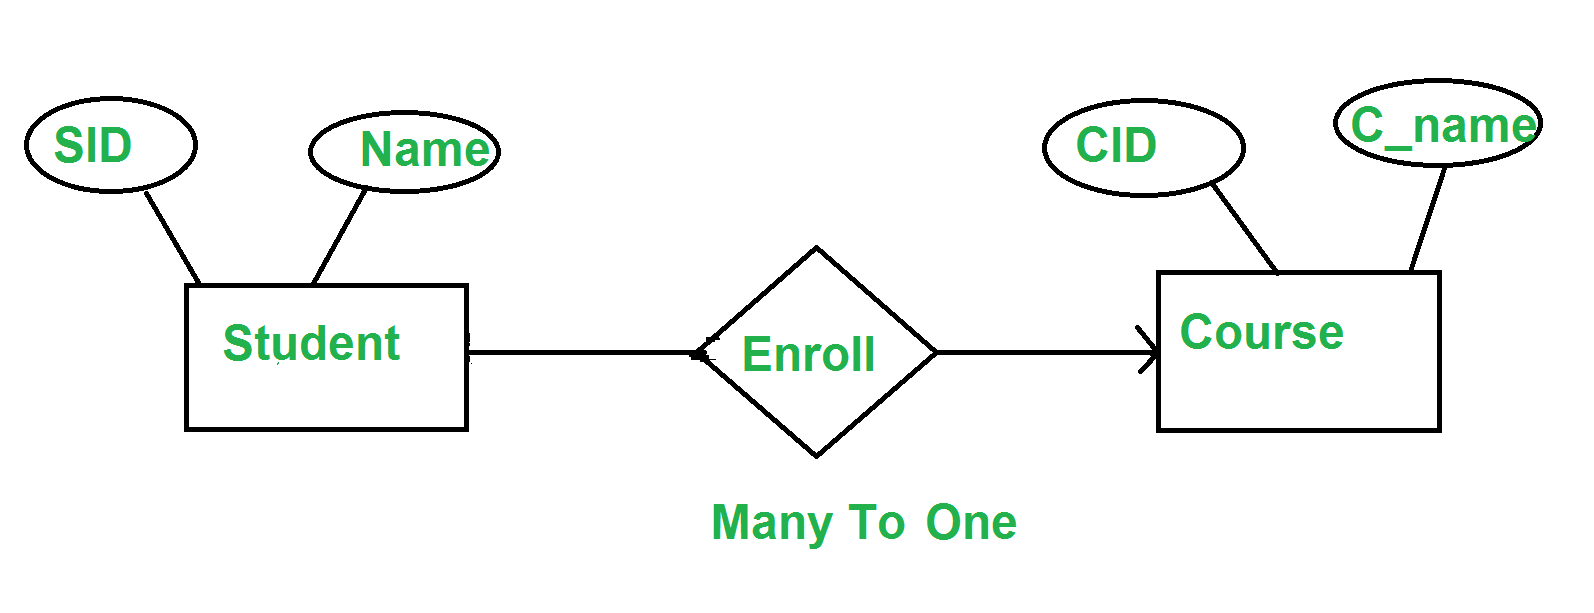 Entity Relationship Diagram One To Many